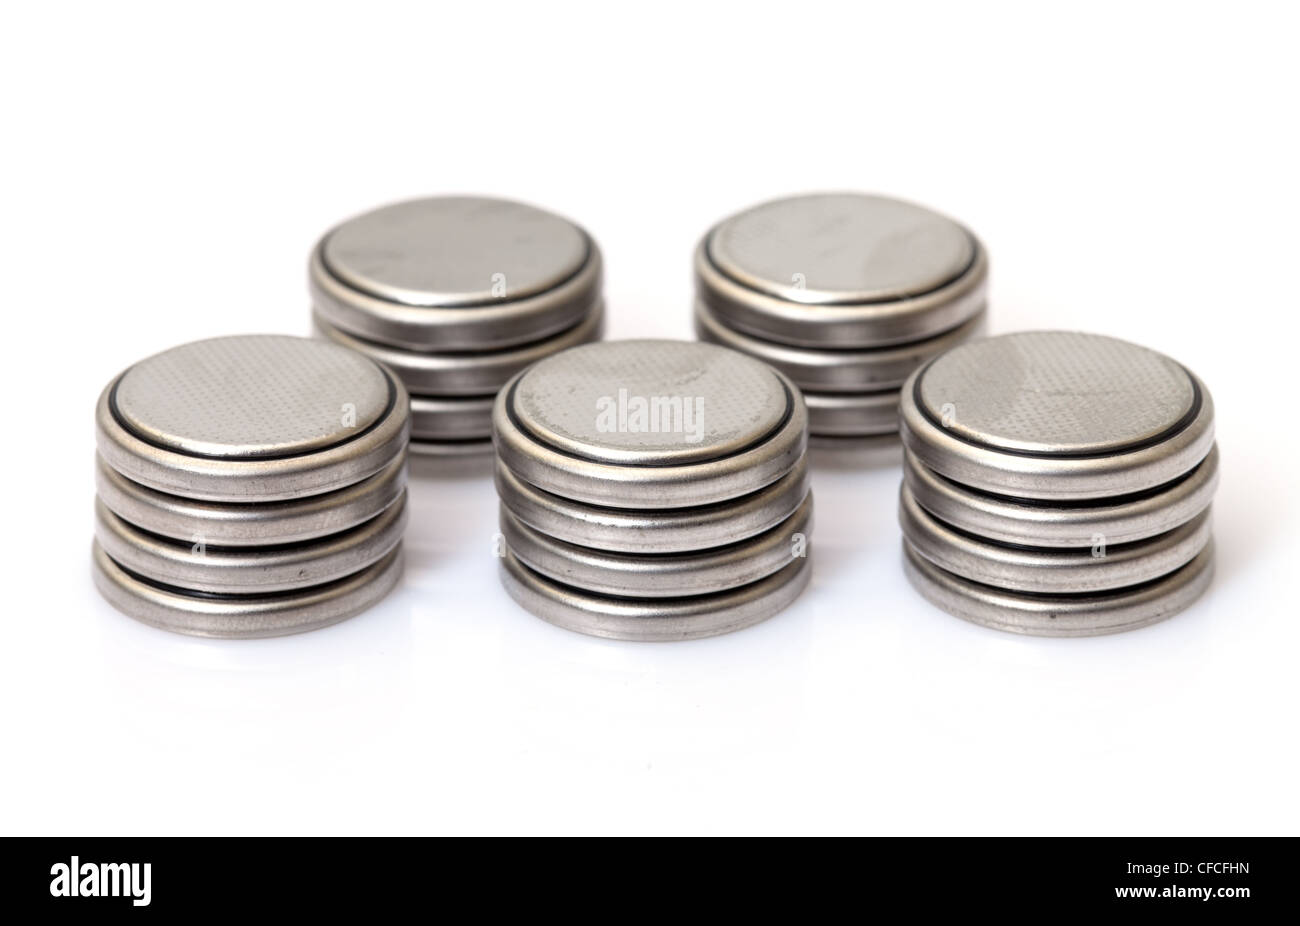 Coin Lithium batteries, on white background - Stock Image